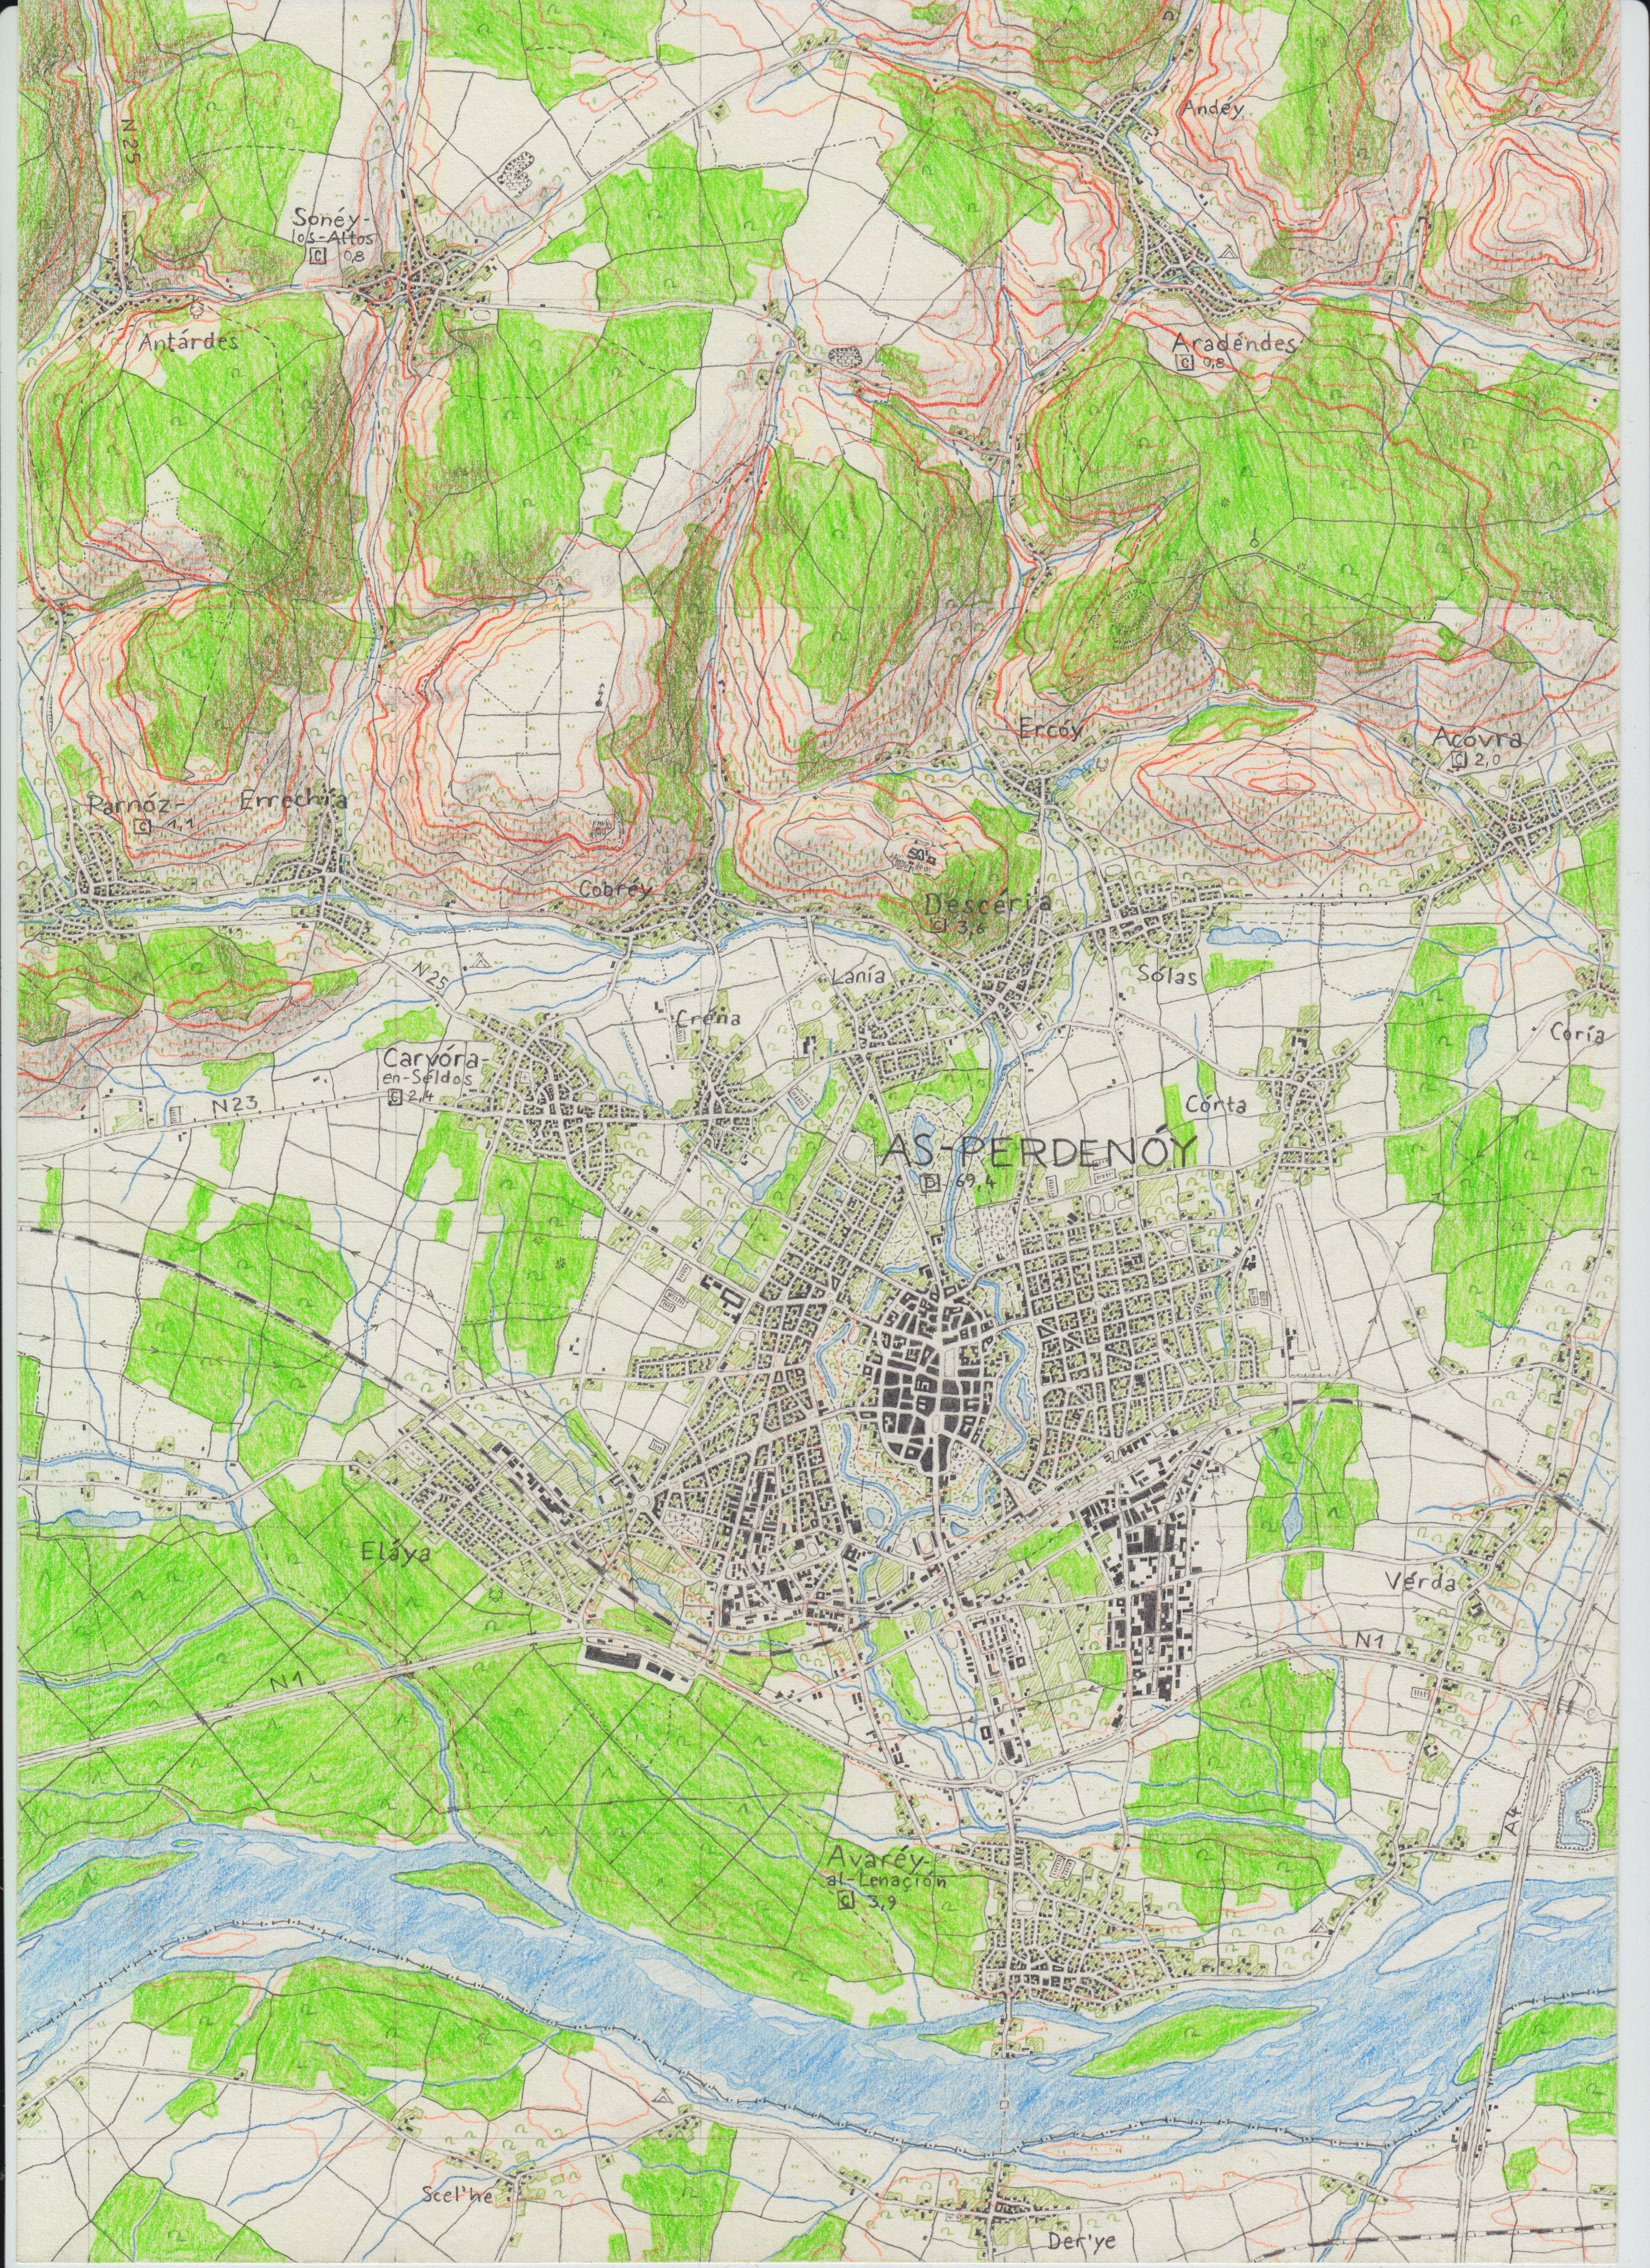 As-Perdenoy topographical map